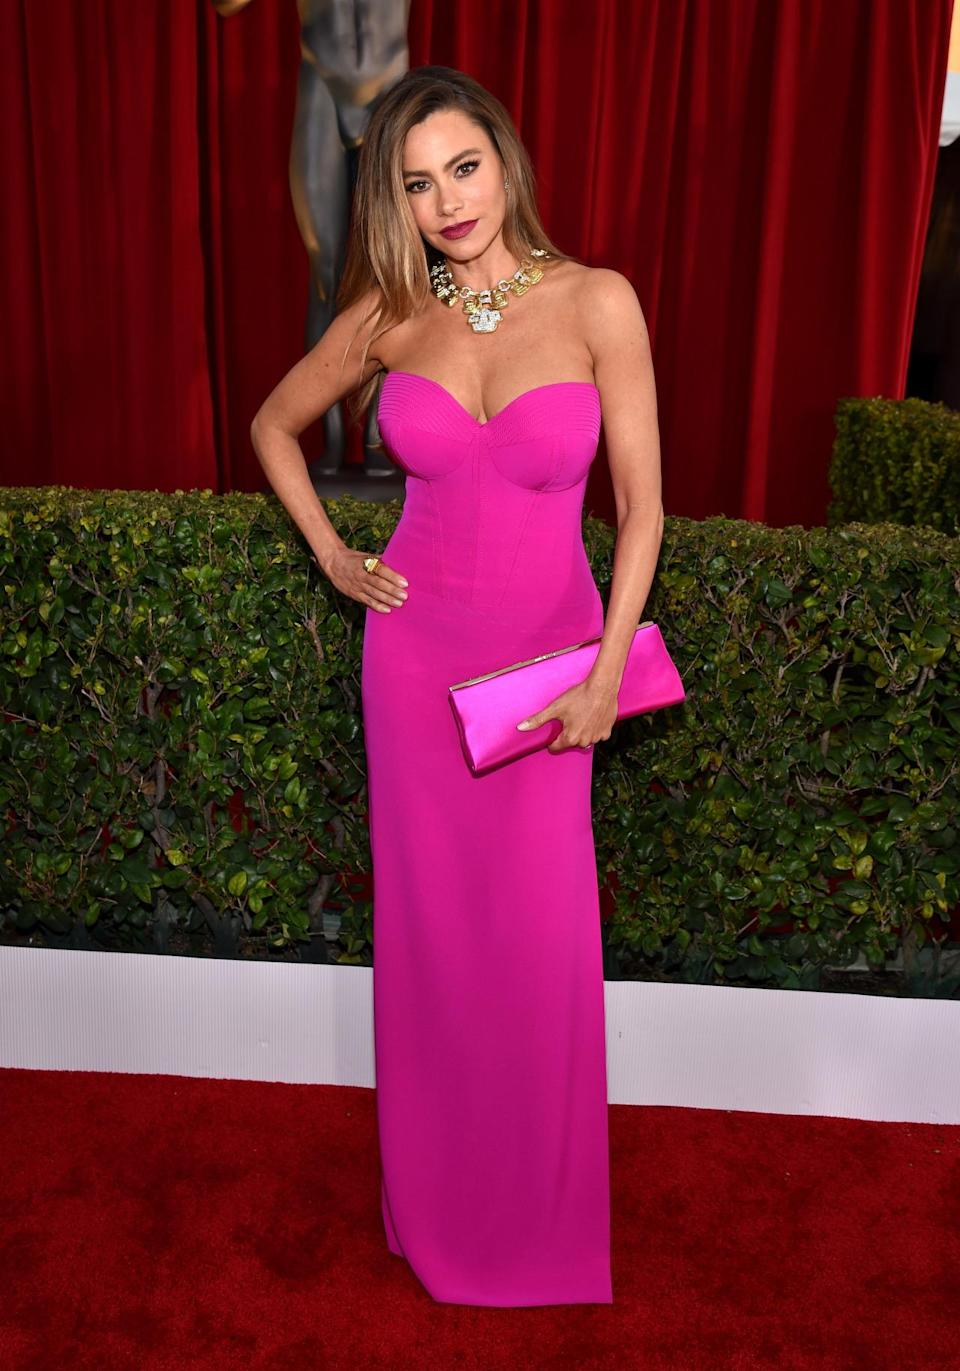 <p>Sofia Vergara dressed like a Barbie doll — which is very timely considering the addition tall, curvy, and petite toys to Mattel's lineup — to the SAG Awards. Wearing a strapless dress that hugged her envious figure, she matched her clutch to the brightly colored gown. The <i>Modern Family </i>star also wore a diamond necklace to add just a little more sparkle to her already sexy look. <i>Photo: Getty Images</i></p>